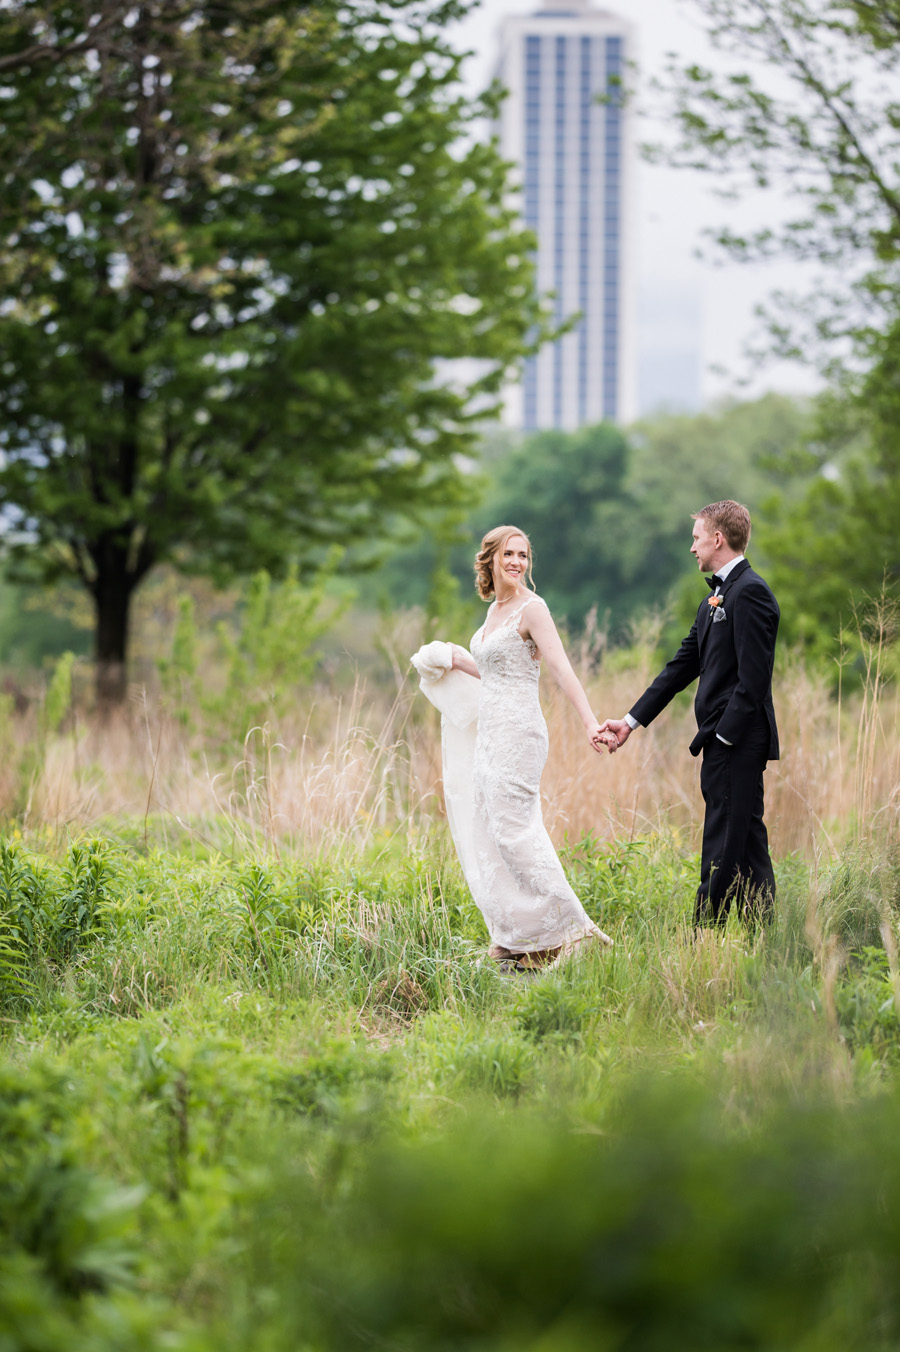 Bride and groom walk along path at Lincoln Park in Chicago.